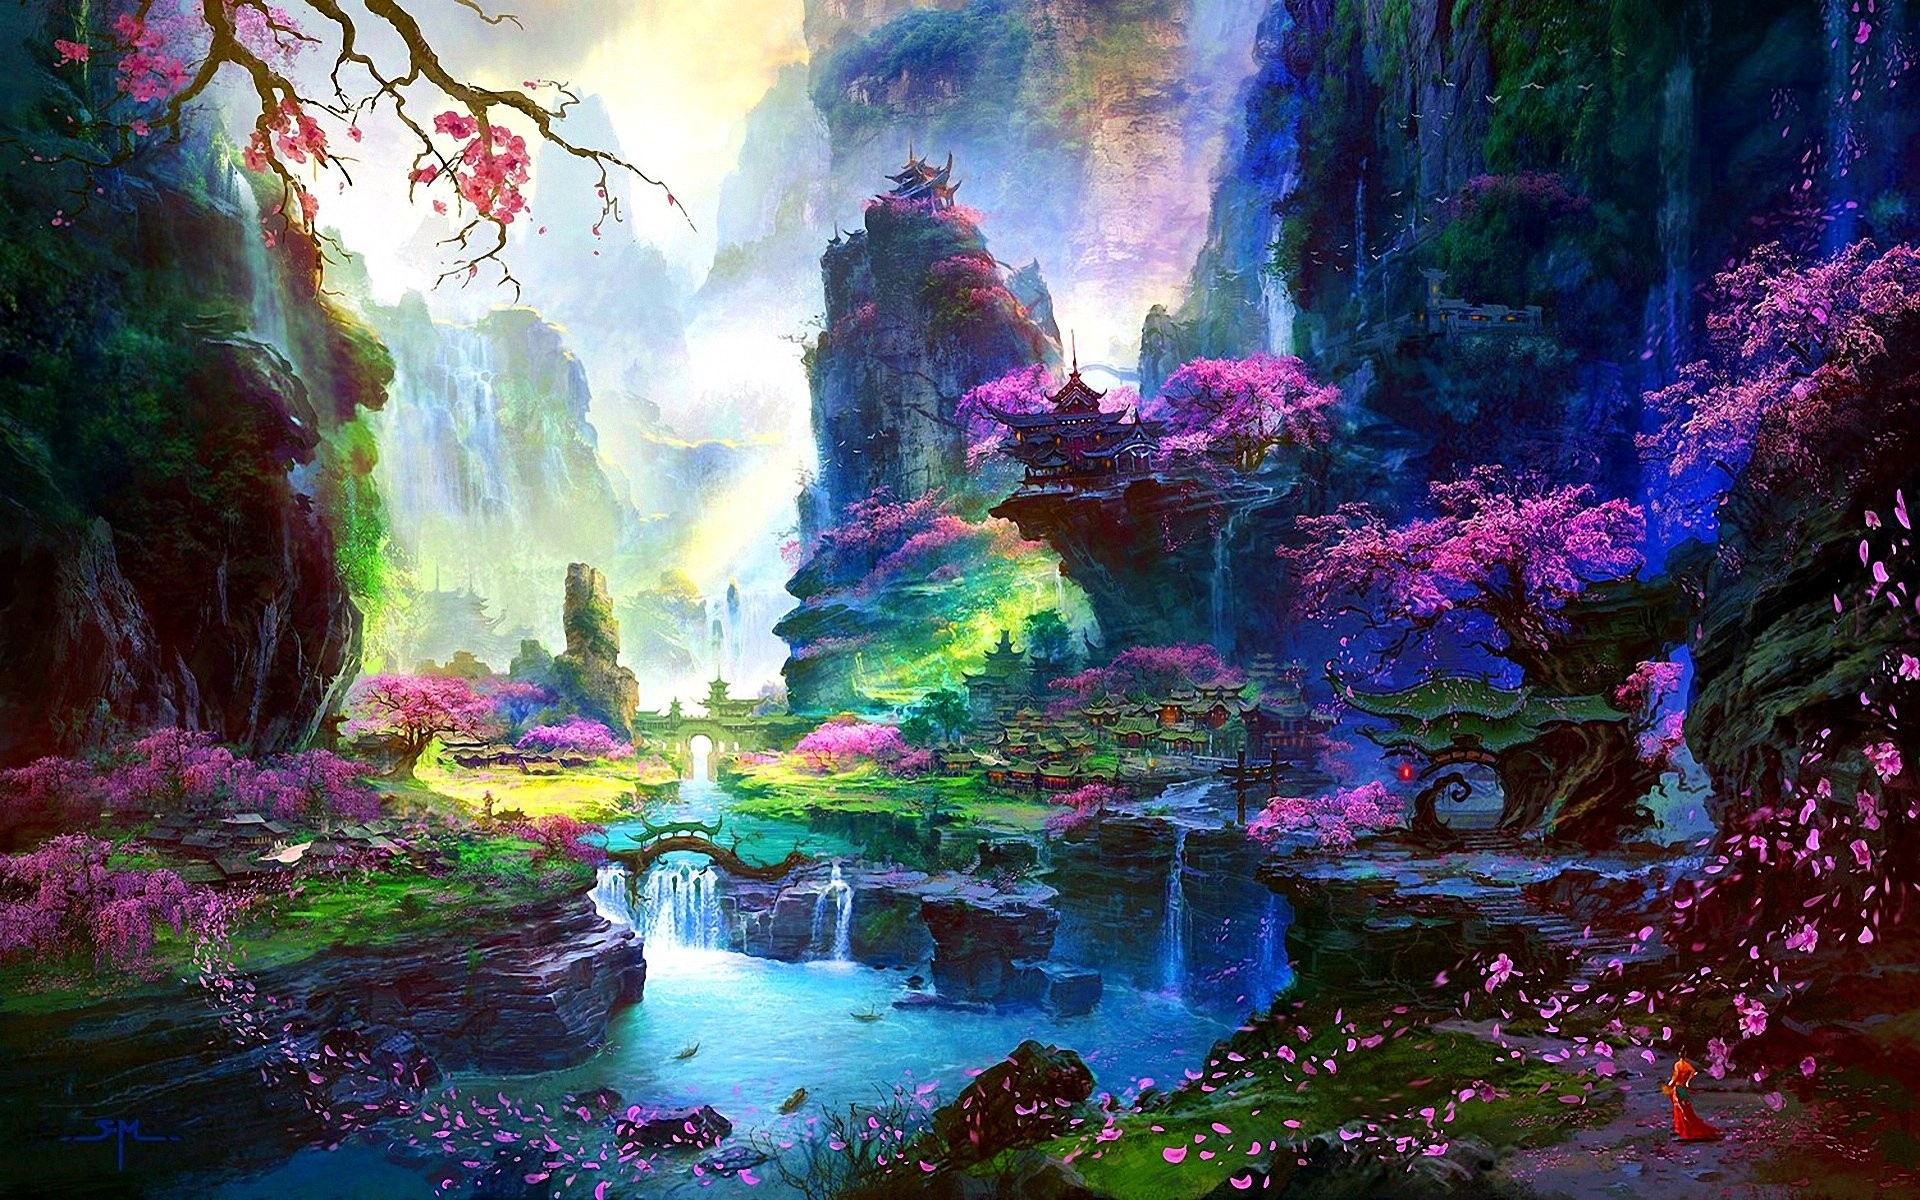 121 Cherry Blossom Hd Wallpapers Backgrounds Wallpaper Ass Cherry Blossom  Wallpaper